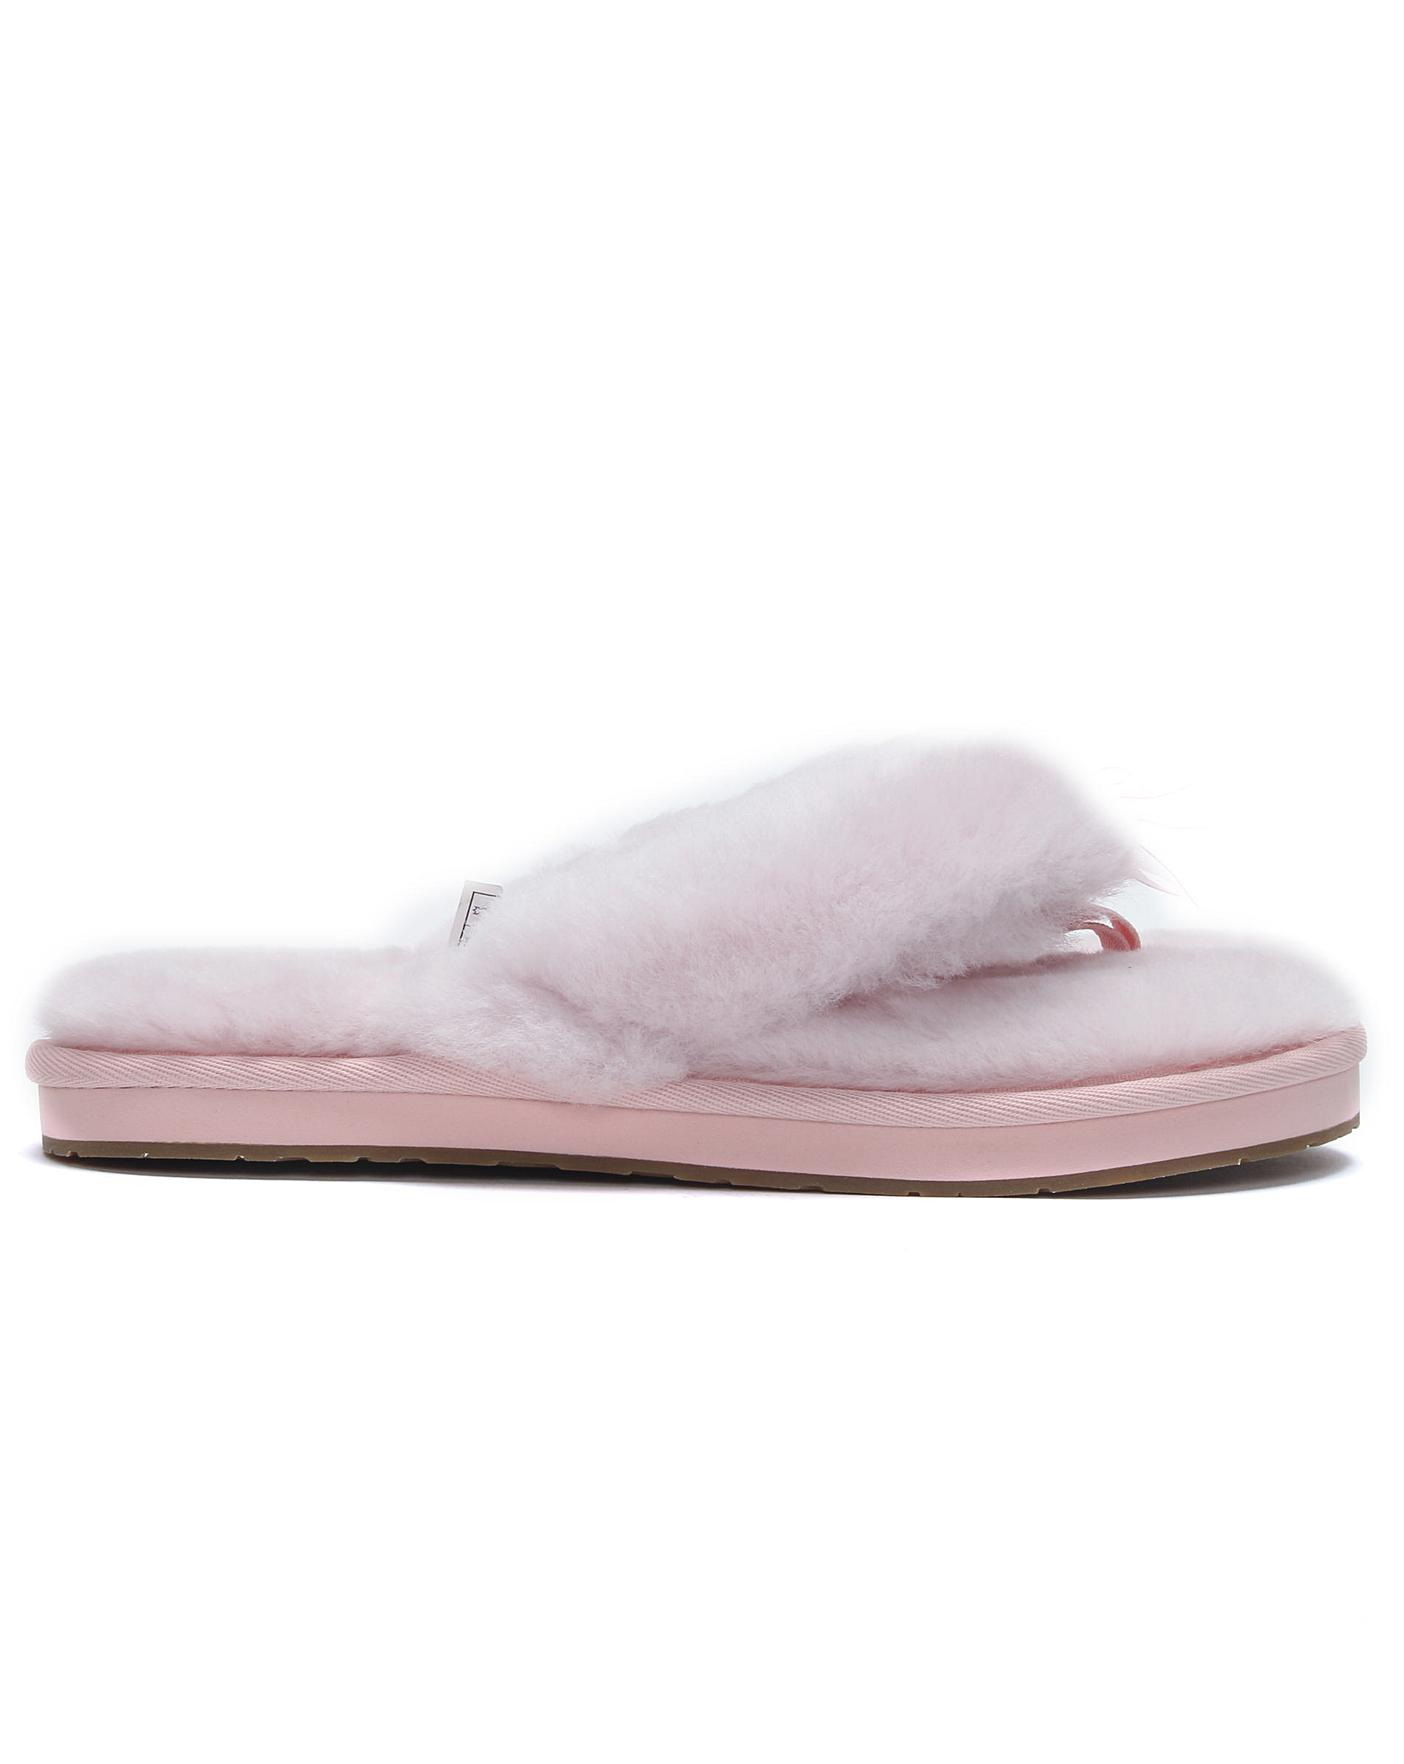 e5300e900 UGG Fluff II Flip Flop Slippers | Simply Be